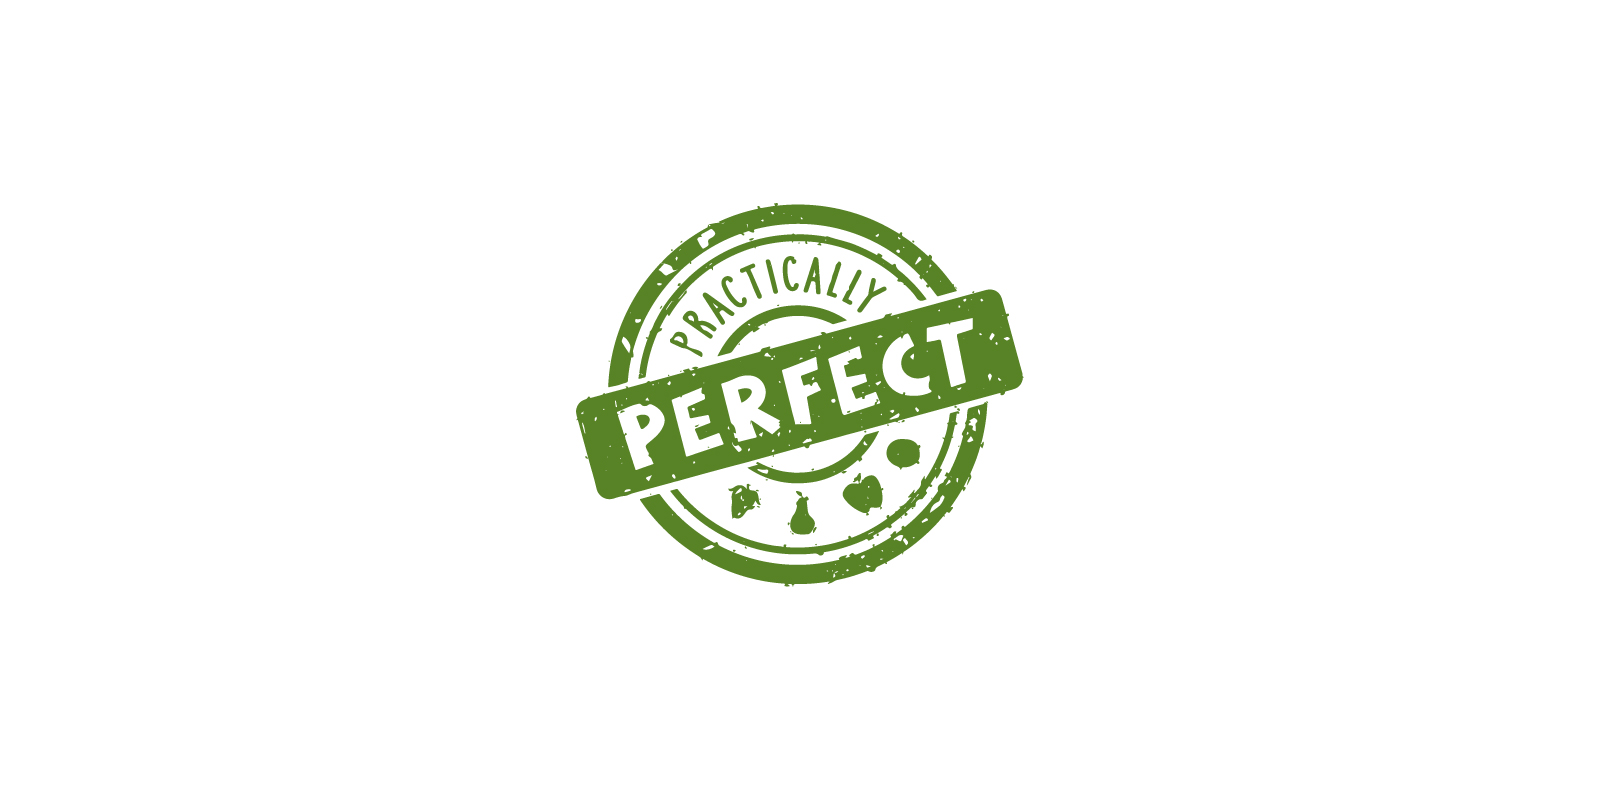 Practically Perfect brand logo in stamp style in green centered on a white background